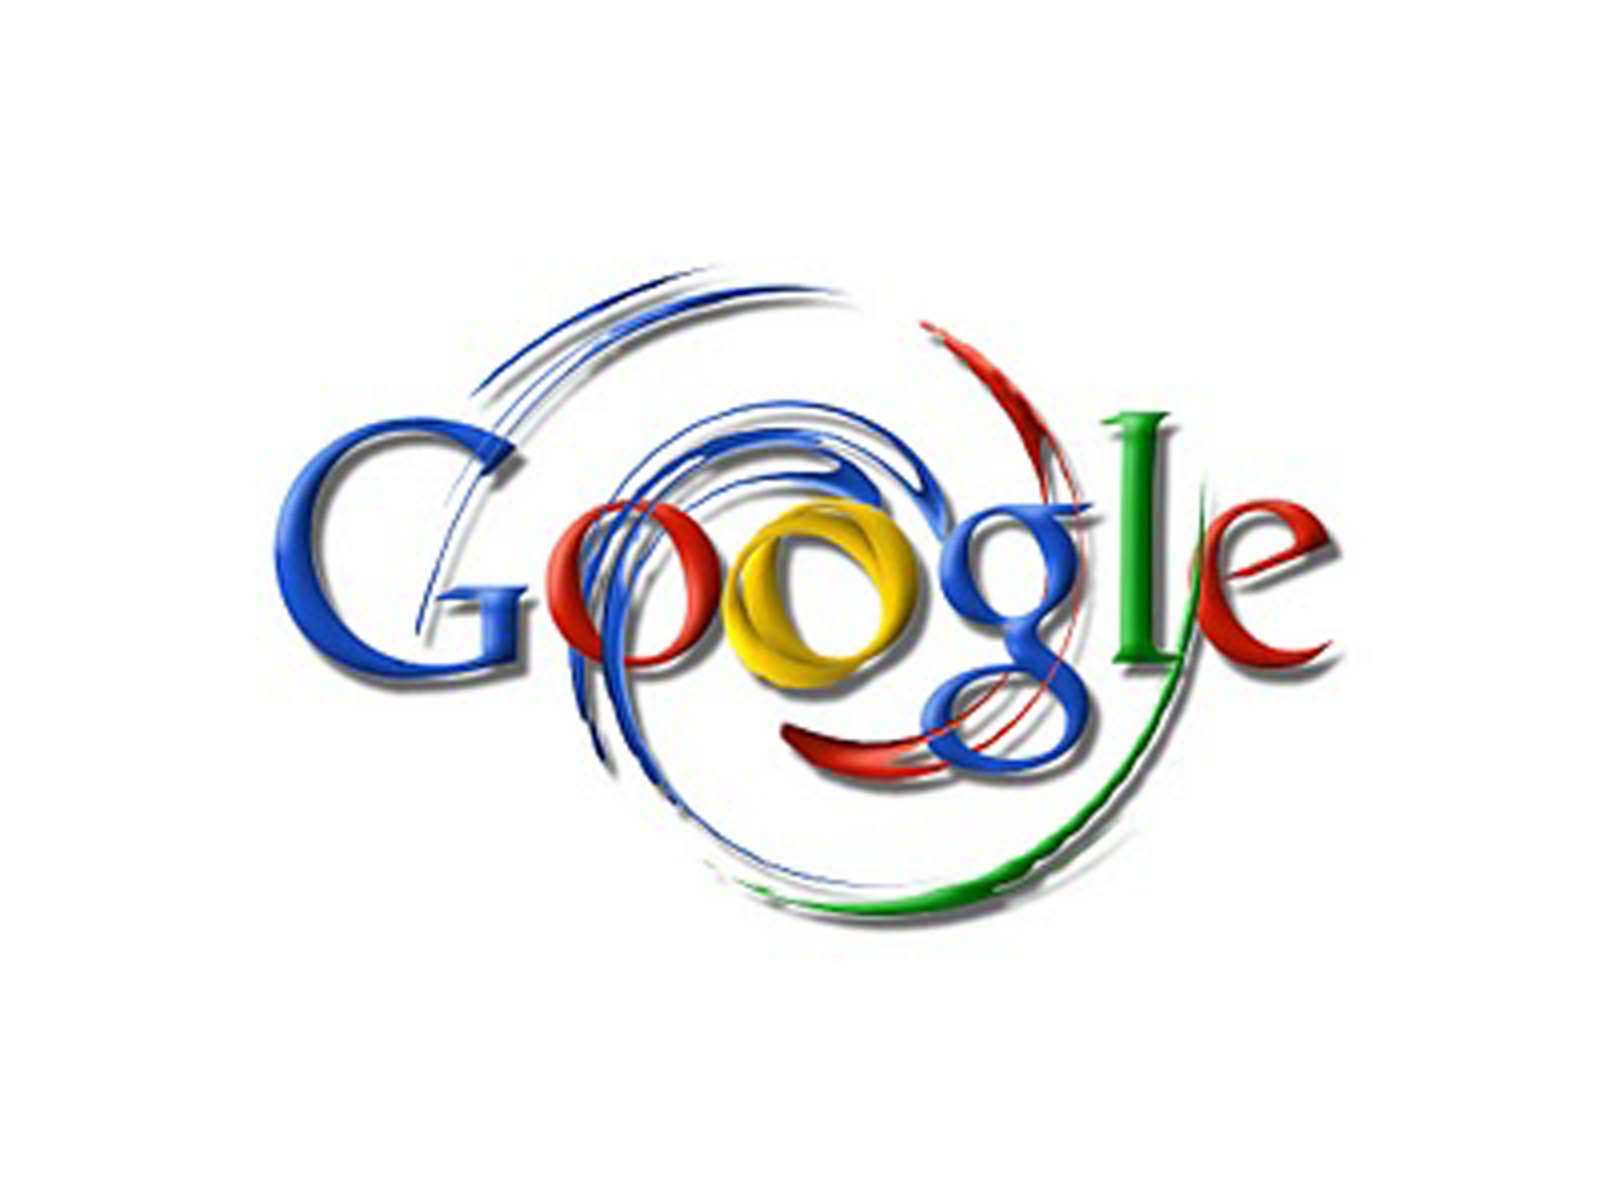 Google Free Desktop Backgrounds